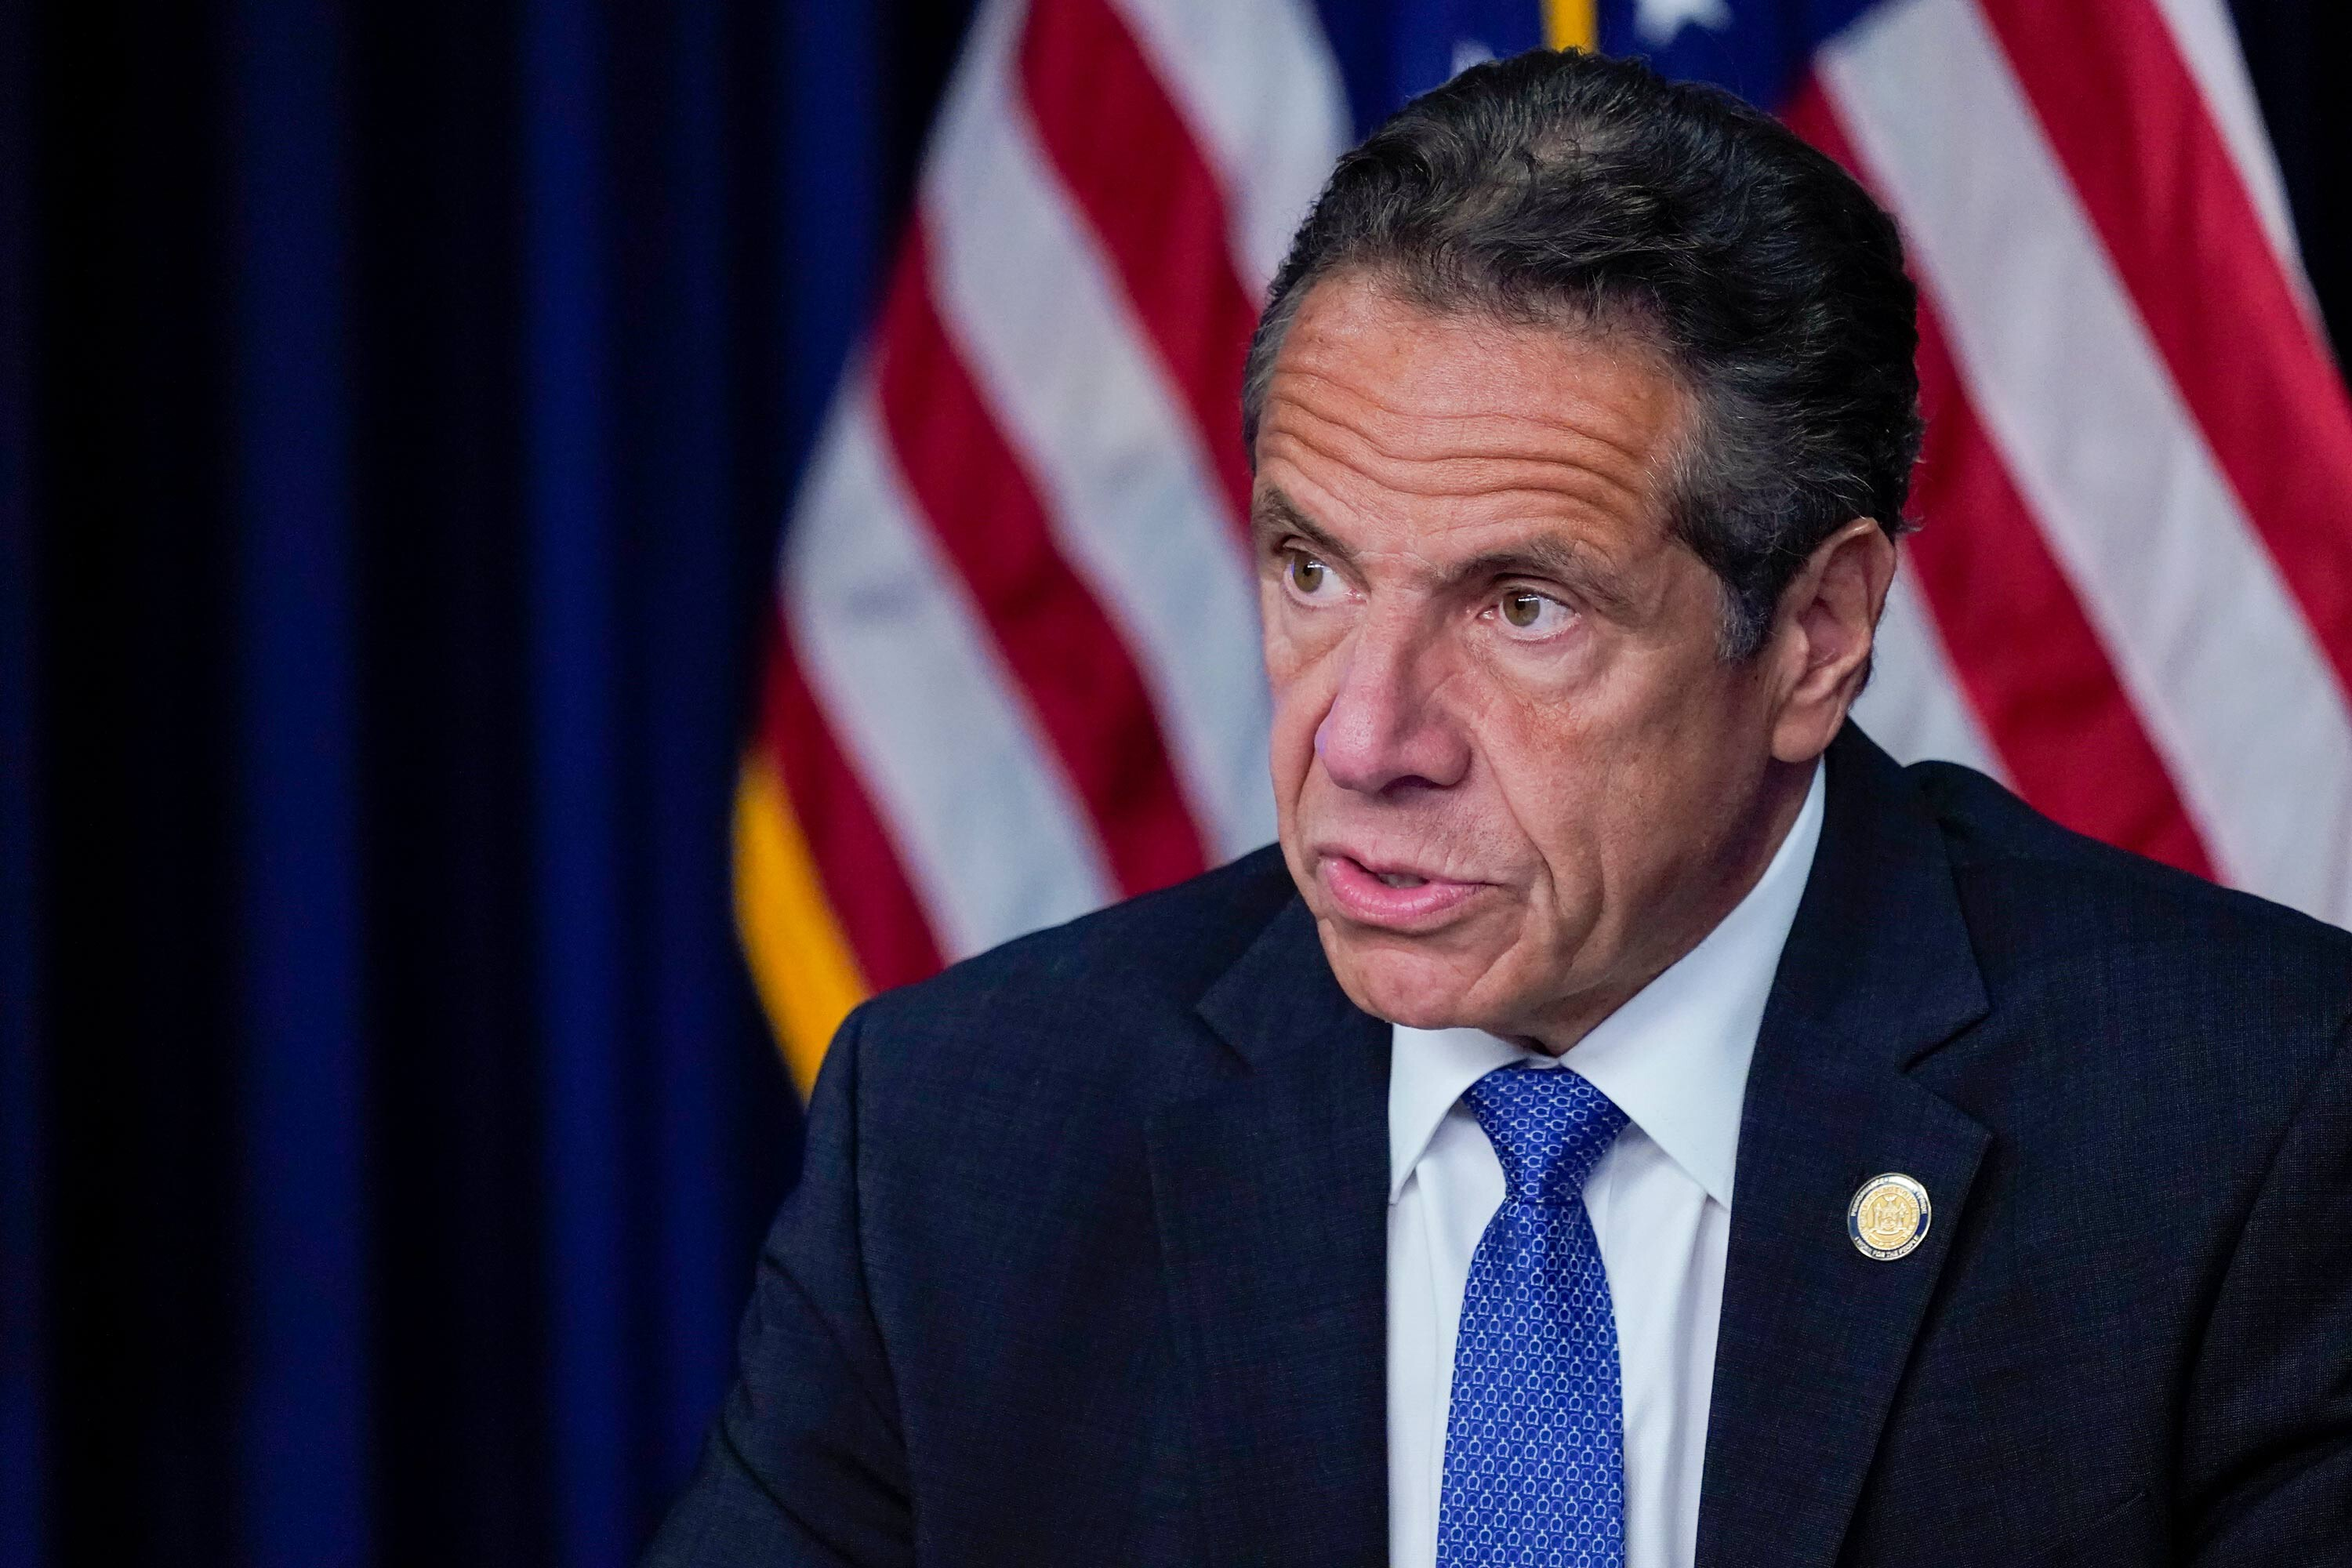 Cuomo in 'fighting mood' even as aides try to convince him to resign